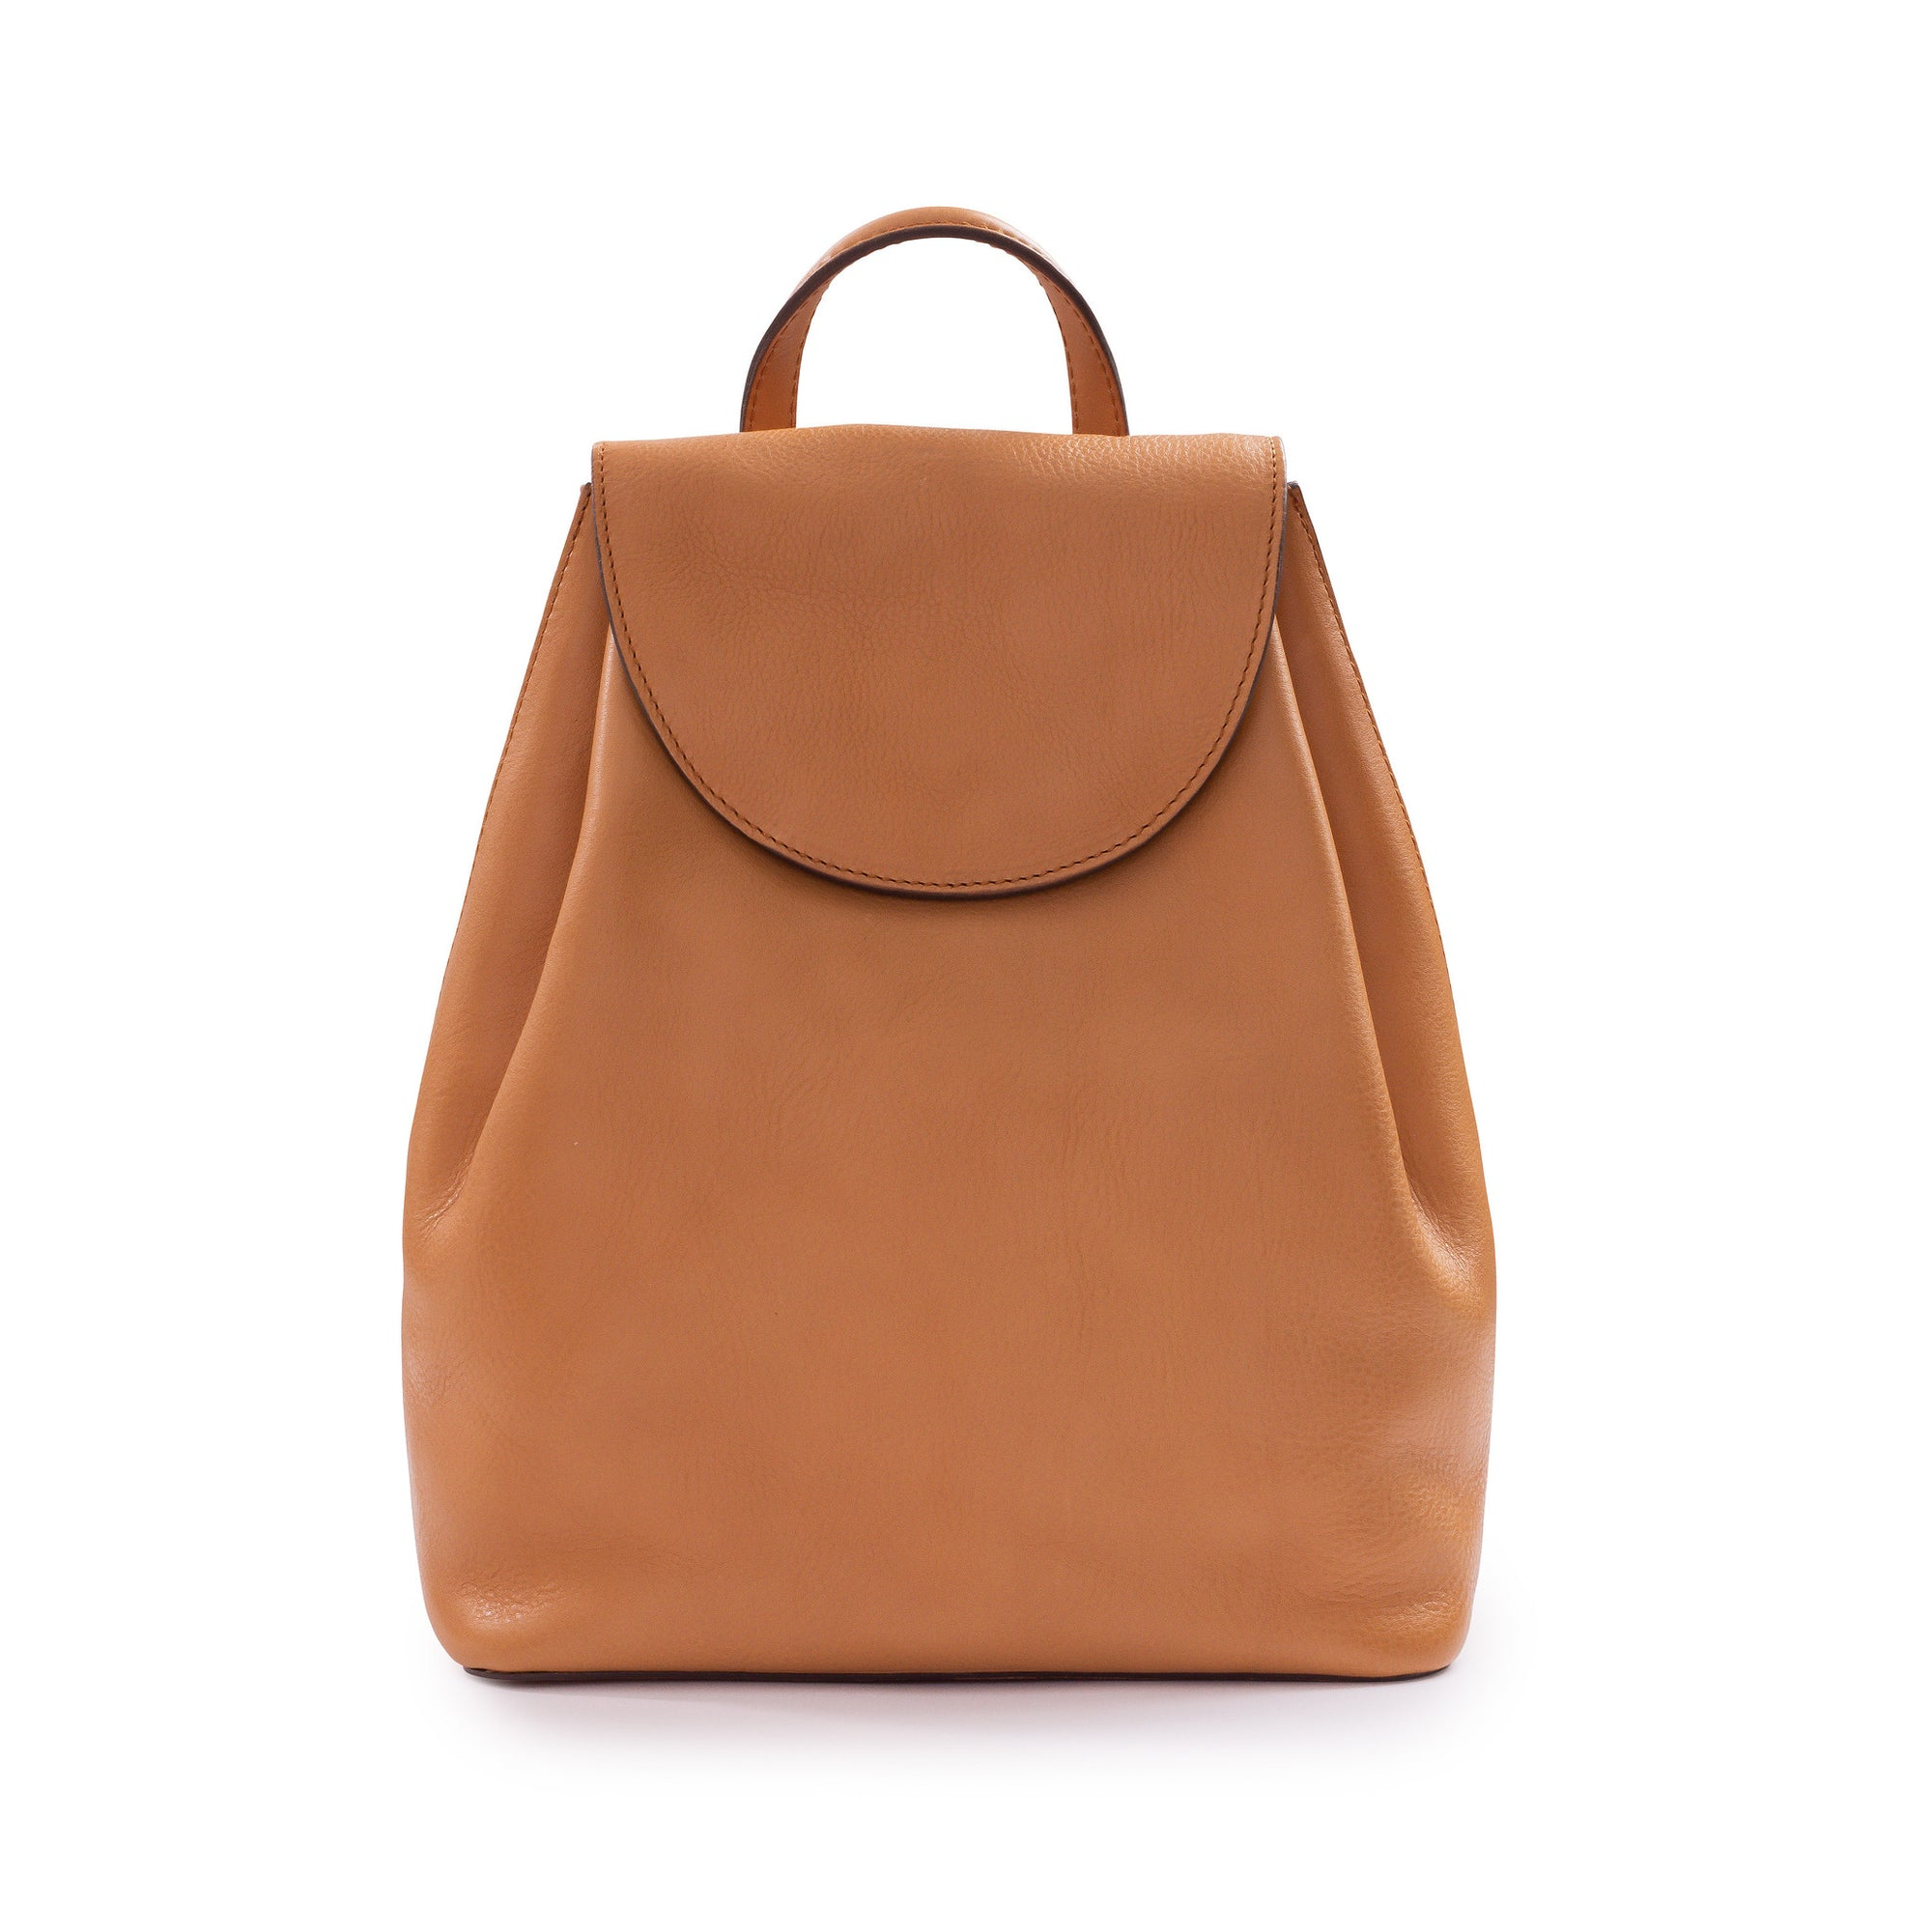 Belle Leather Backpack in Nude